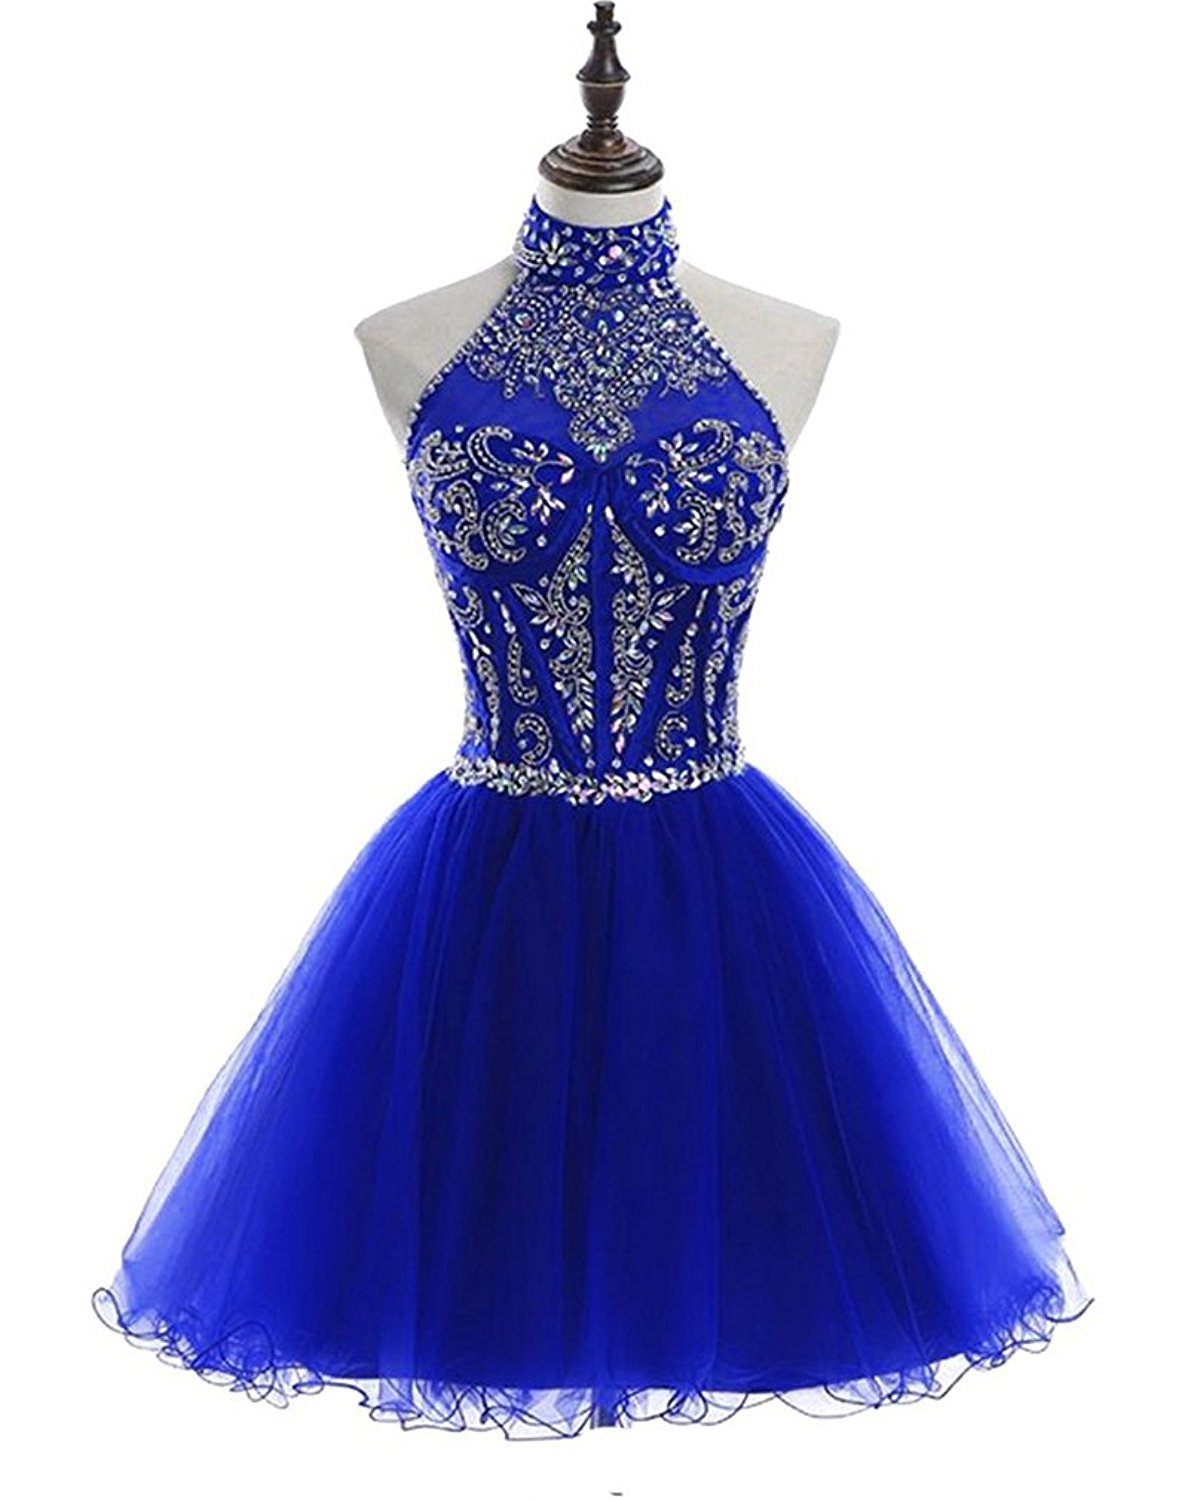 Primary image for Women's Halter Beading Short Homecoming Dresses Sequined Backless Prom Gowns